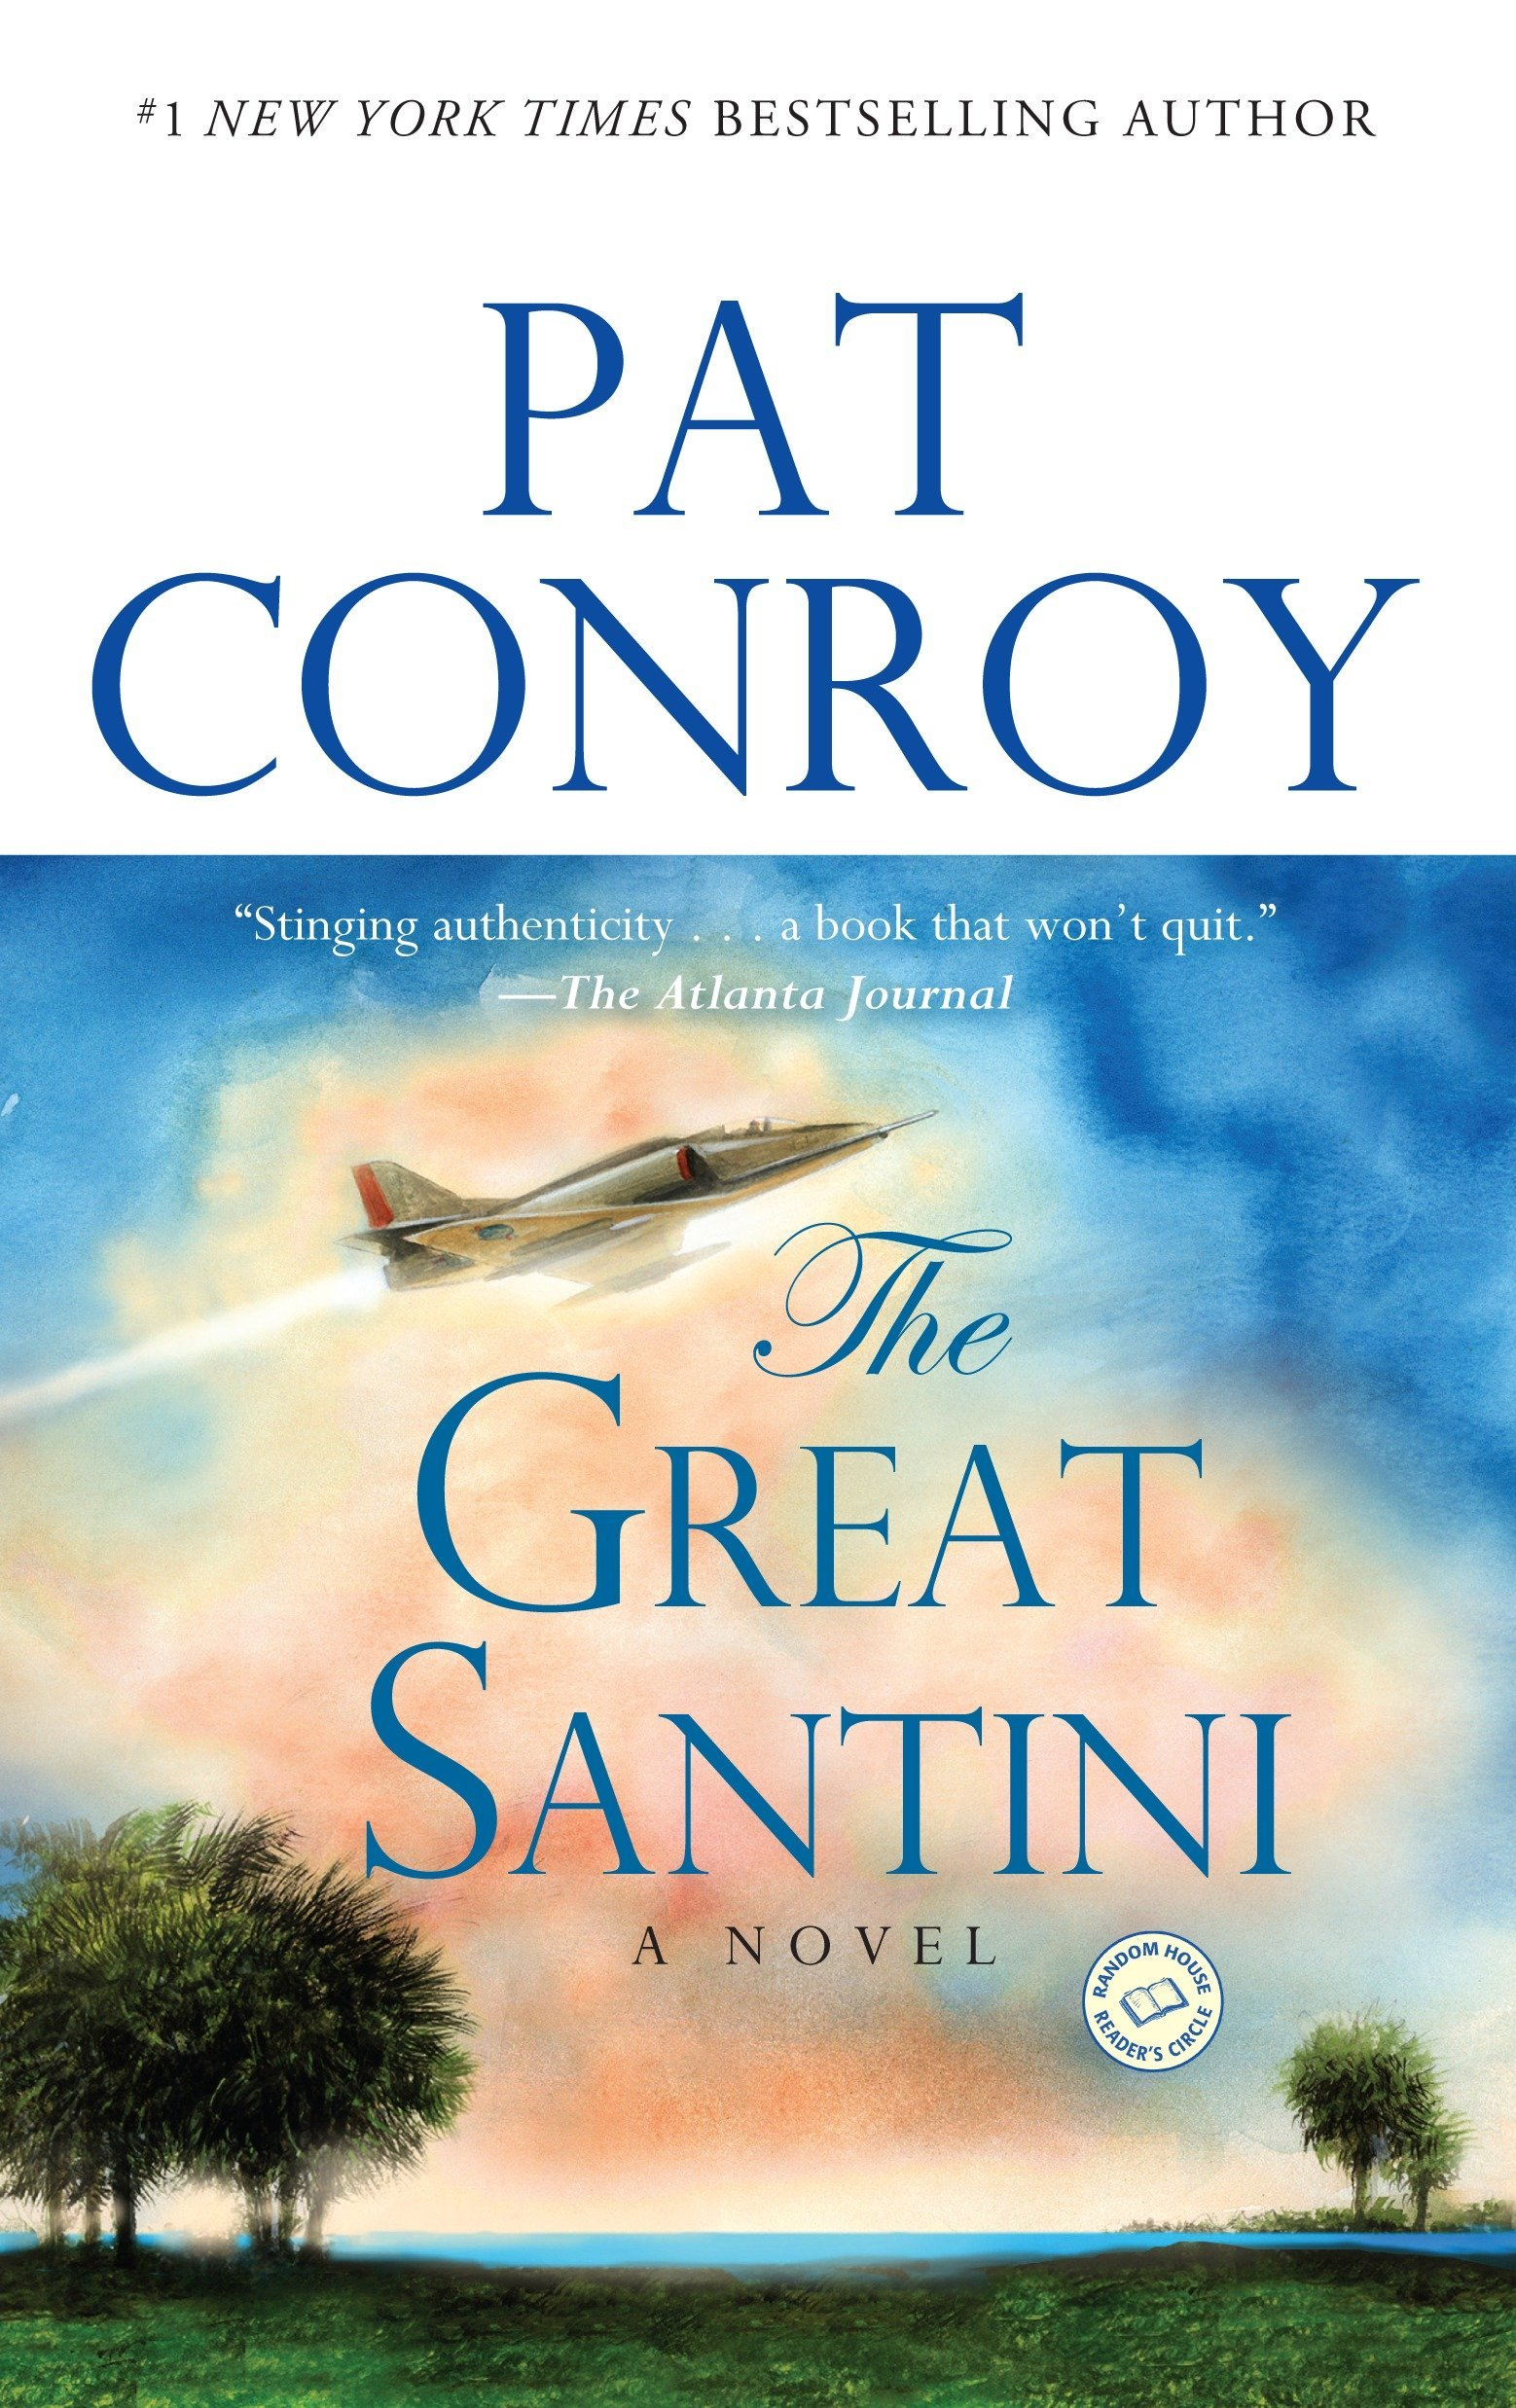 Image result for The Great Santini book cover